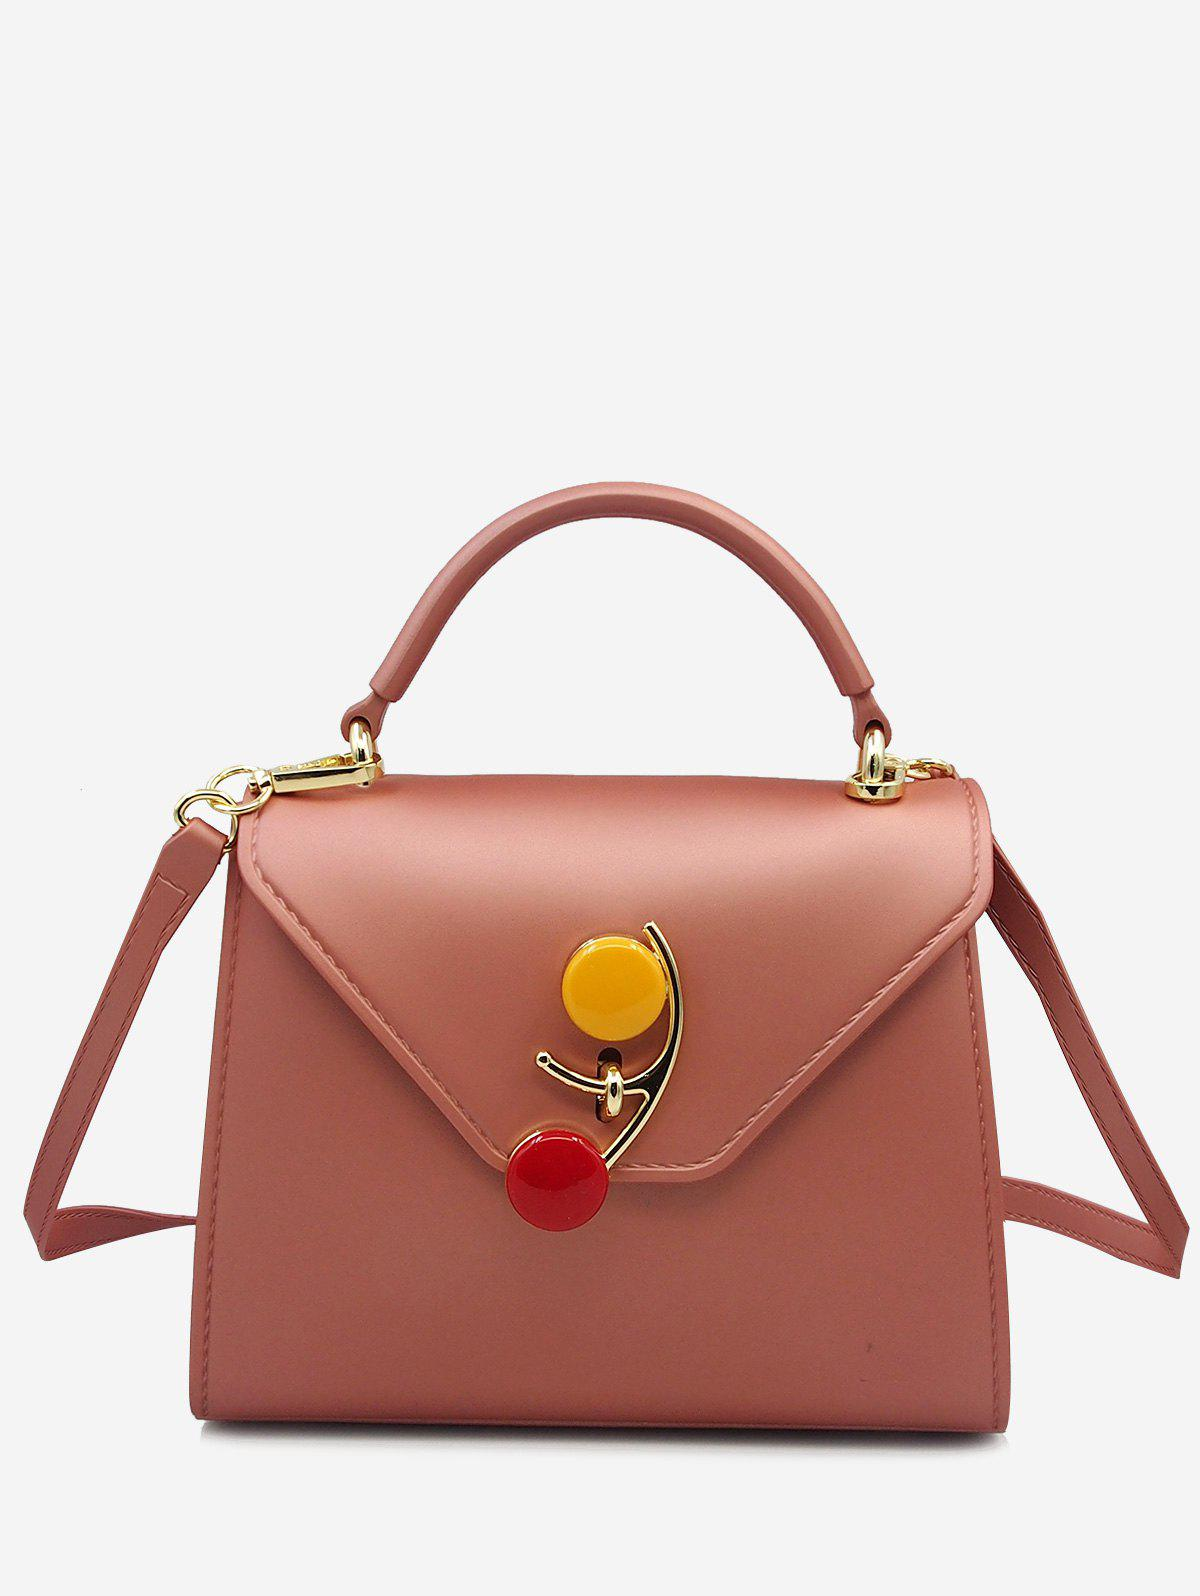 Flap Contrasting Color Handbag - ROSE GOLD